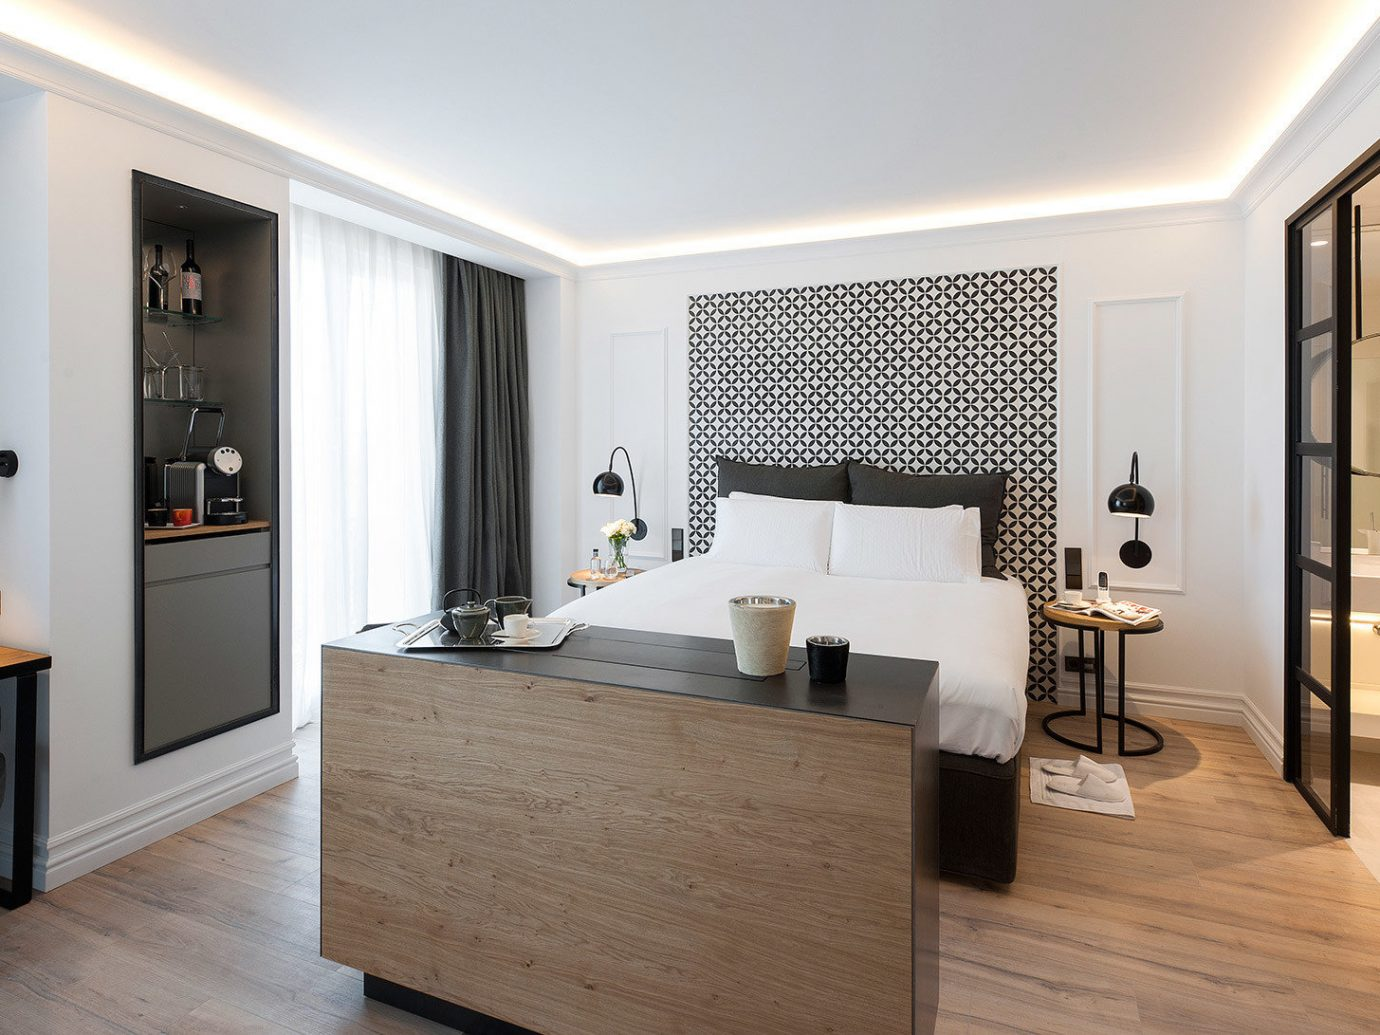 Barcelona Bath Bedroom Boutique Design Hotels Living Luxury Modern Spain indoor floor wall room ceiling window property furniture bathroom interior design real estate home estate flooring Suite cabinetry wood flooring apartment wood decorated